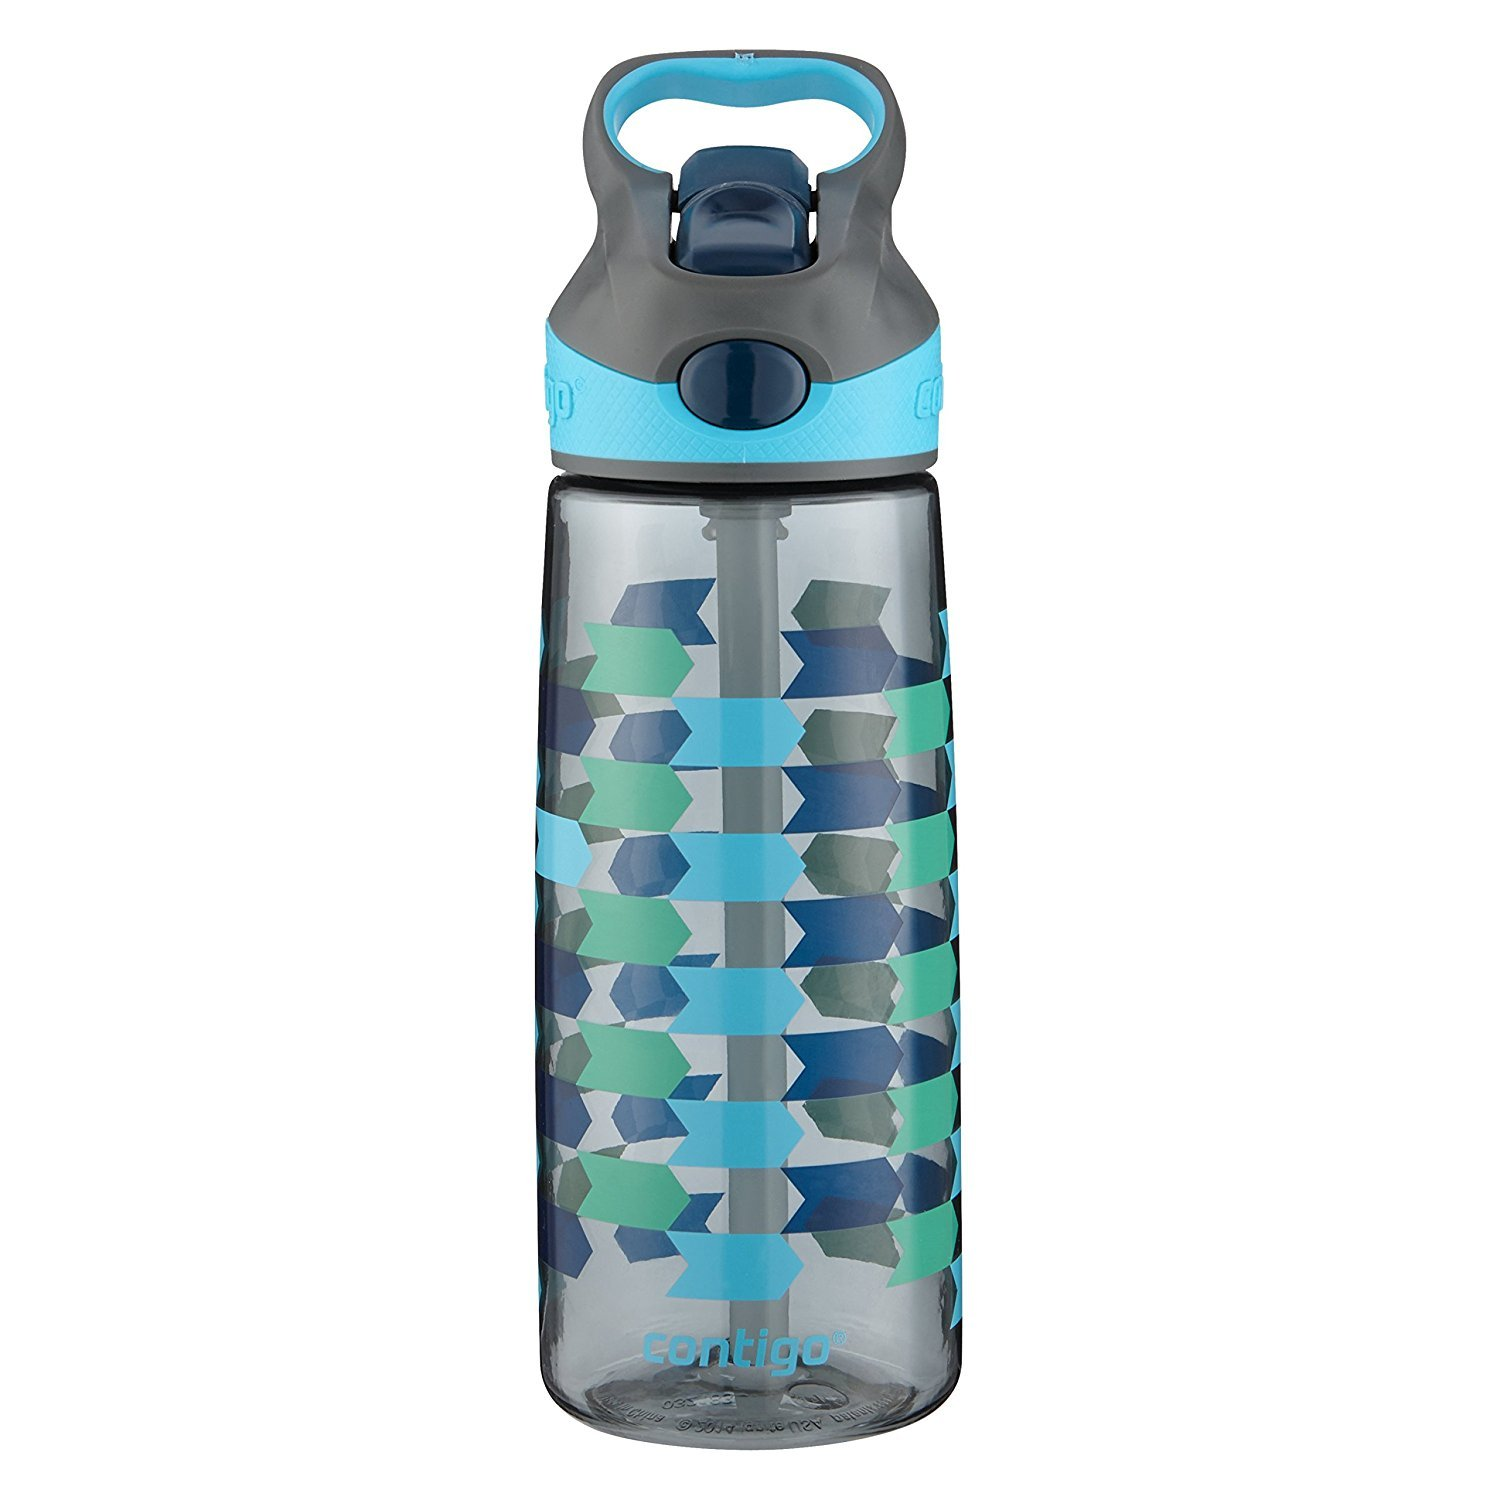 Contigo AUTOSPOUT Straw Striker Kids Water Bottle, 20 oz, Charcoal Chevron Arrows